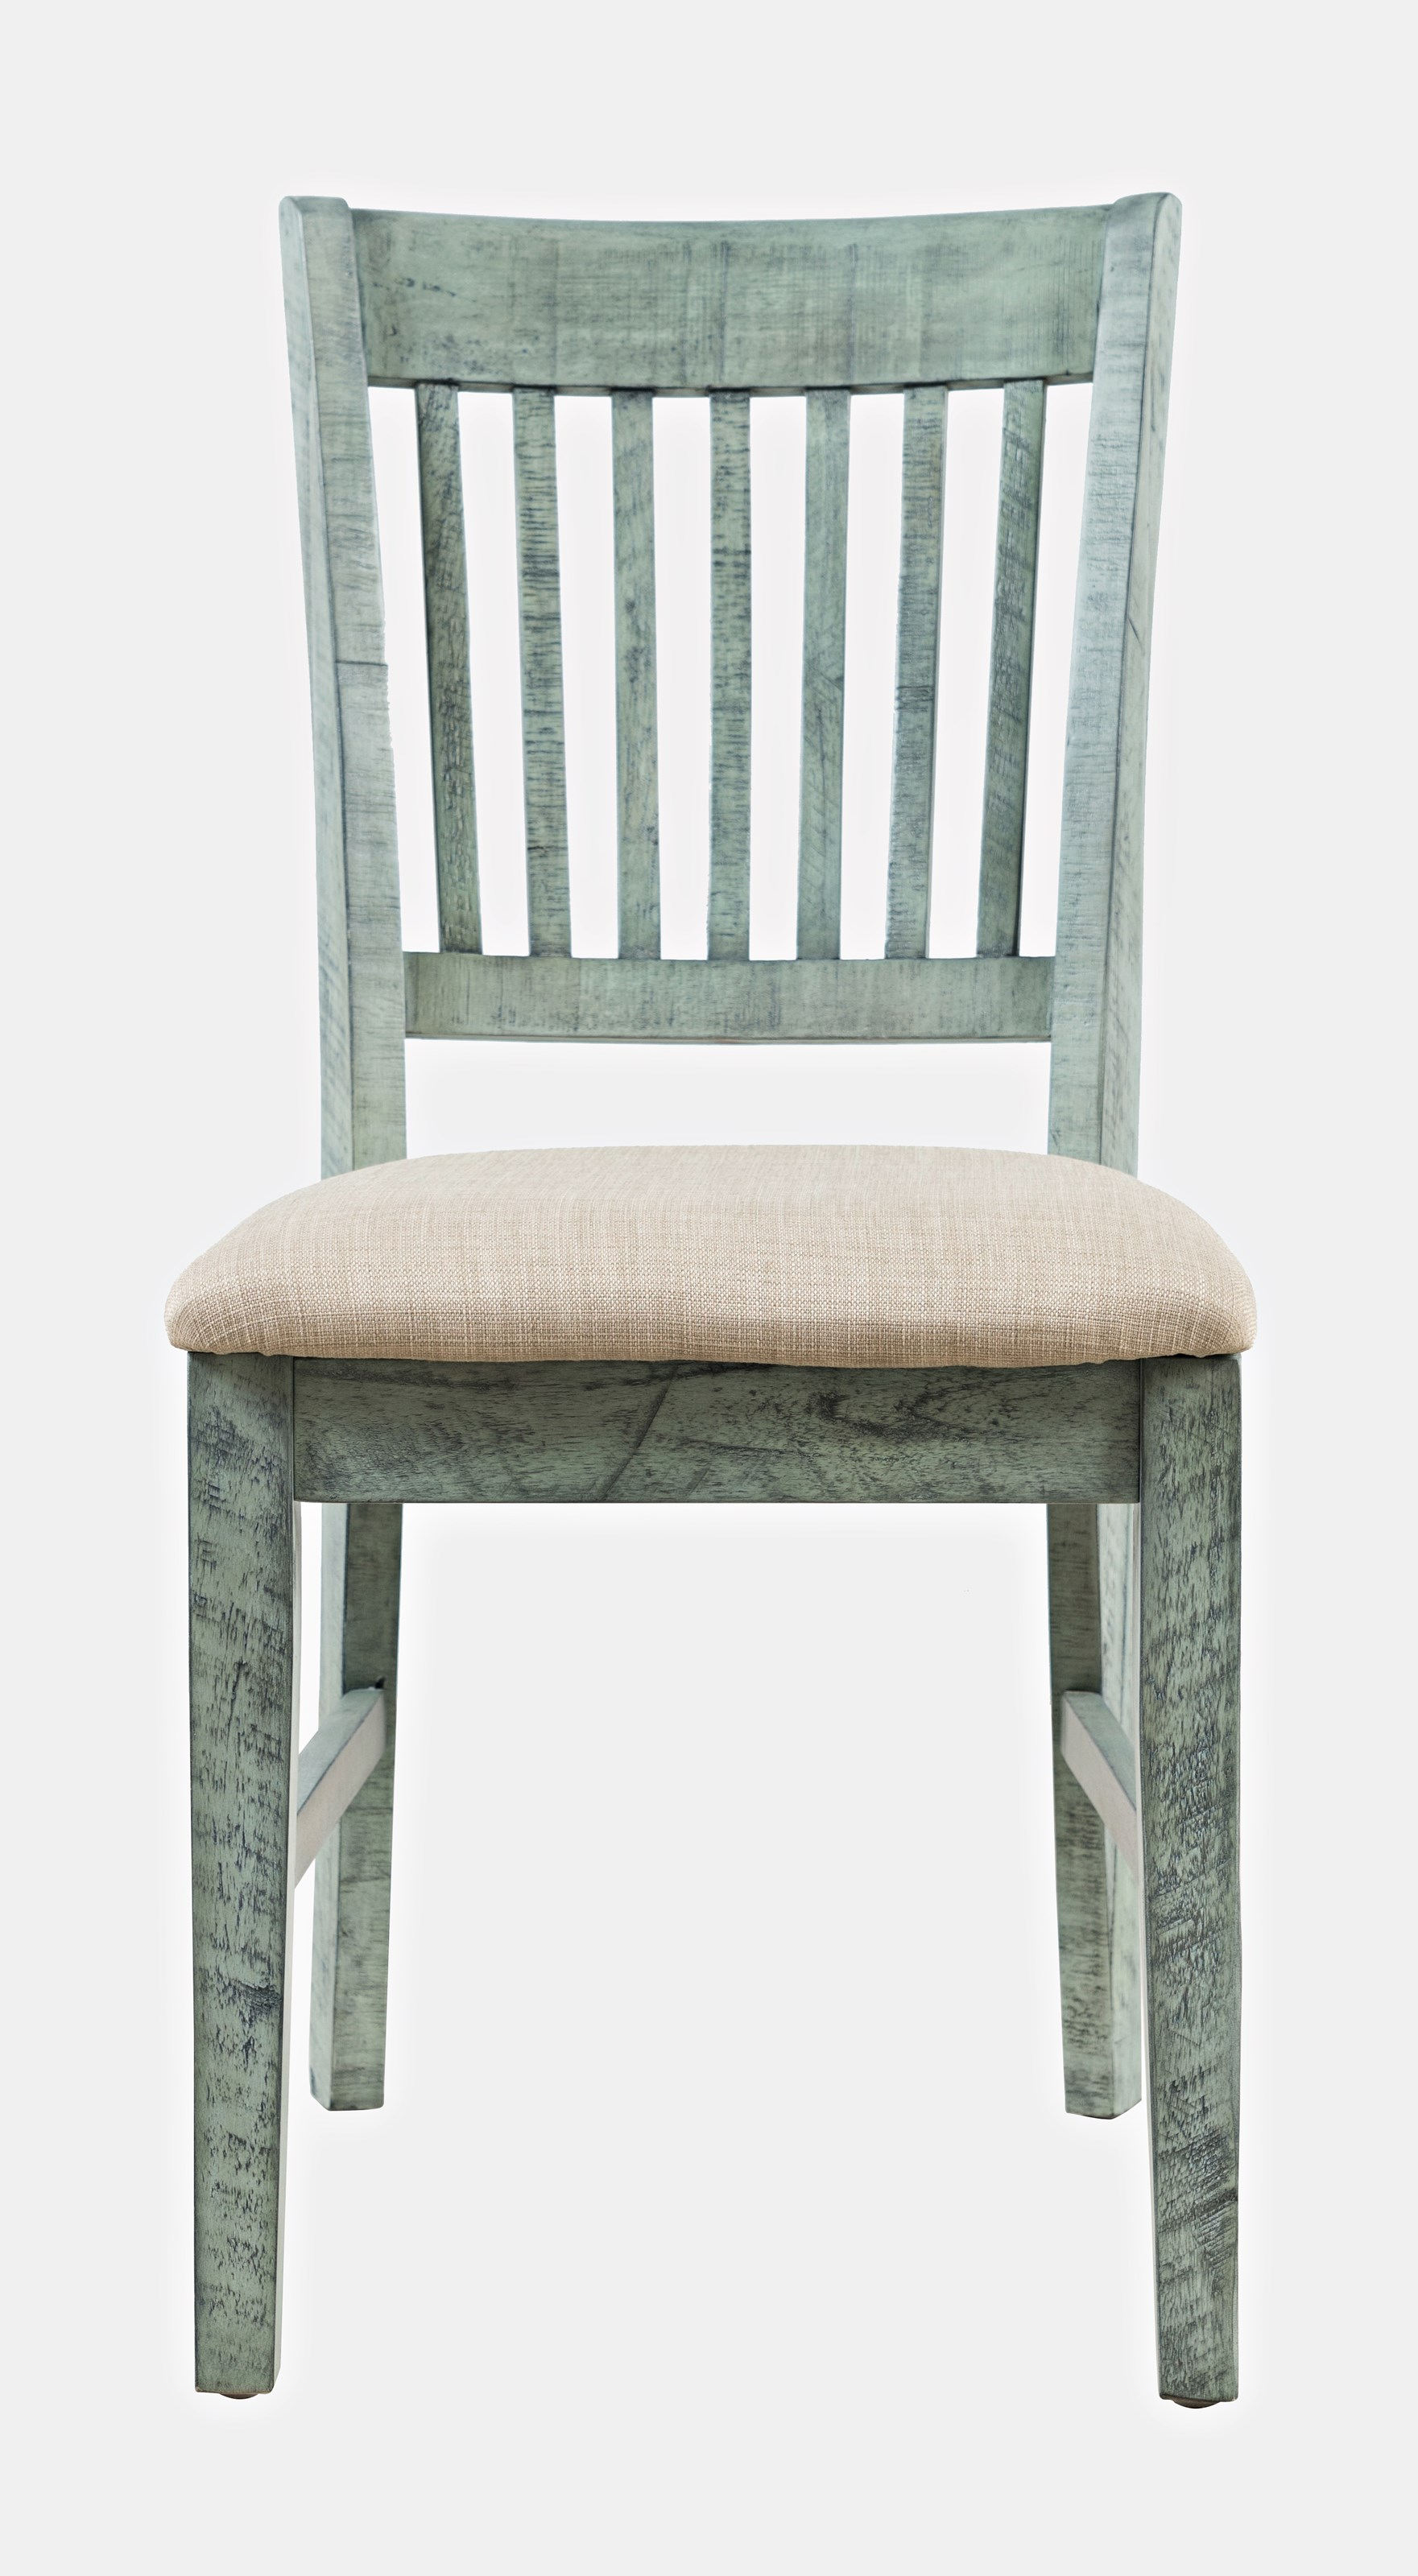 Rustic Shores Desk Chair by Jofran at Jofran